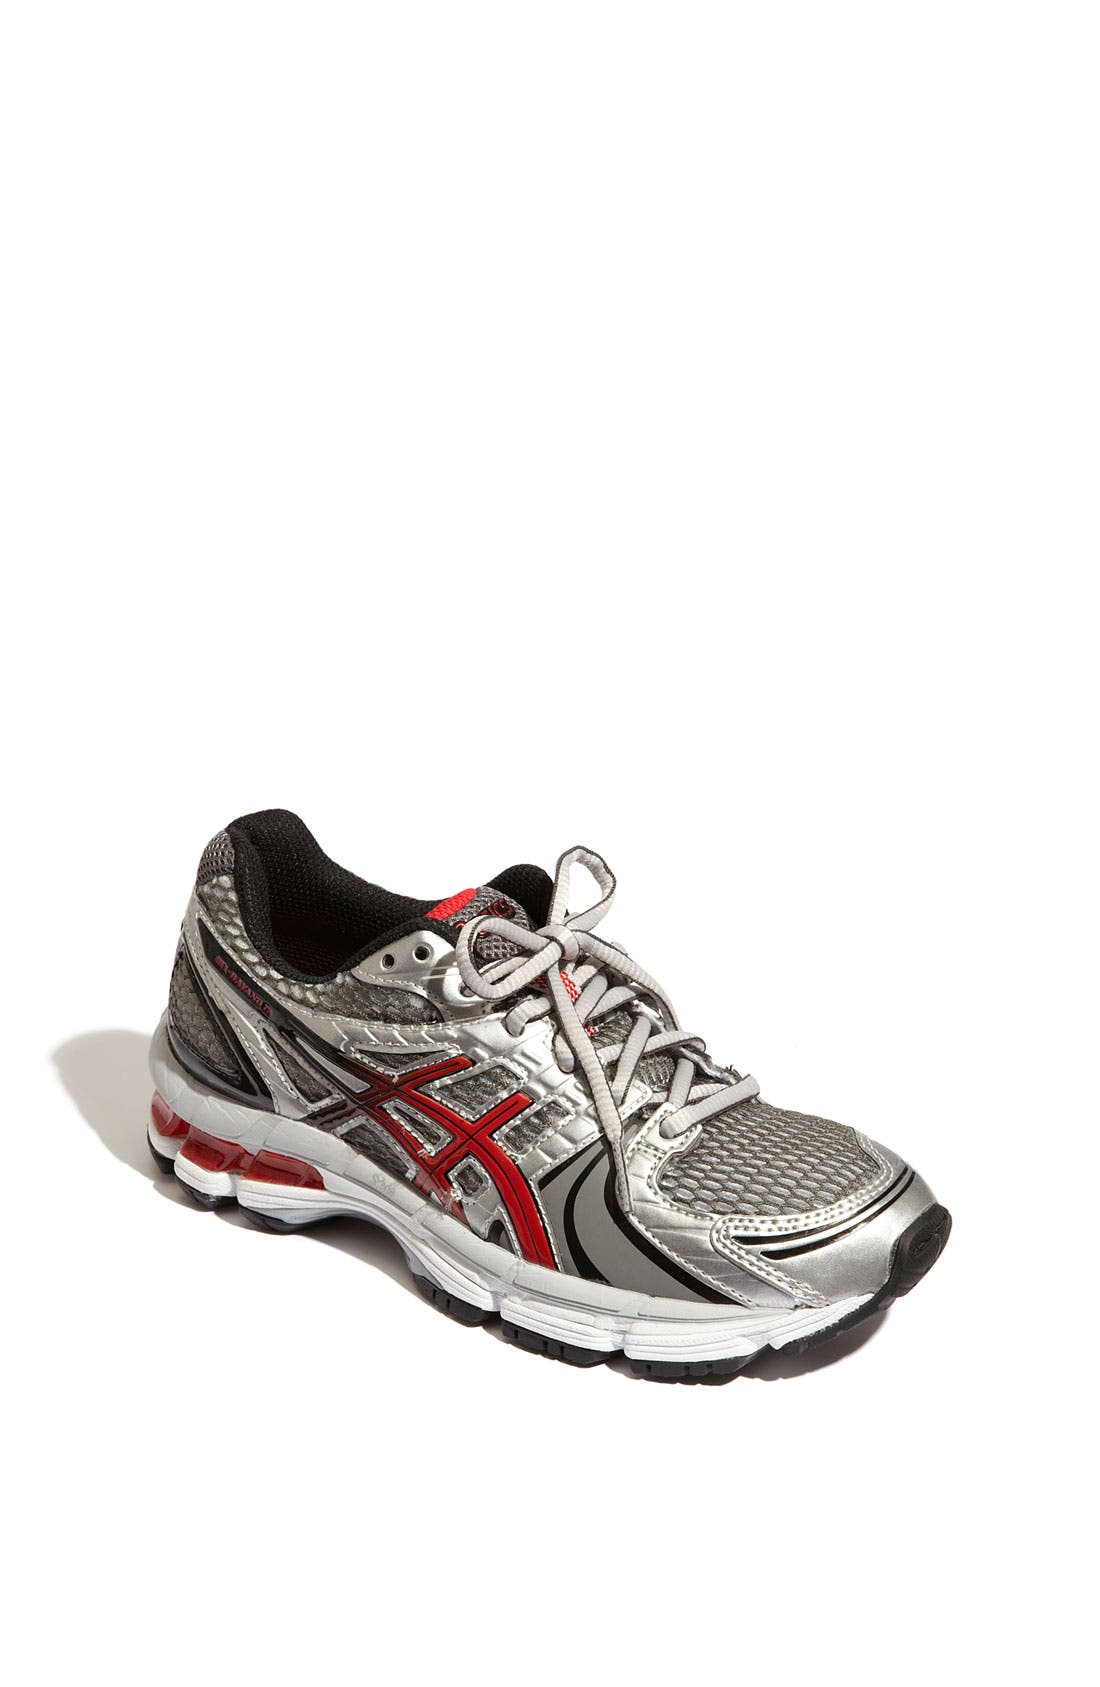 Alternate Image 1 Selected - ASICS® 'GEL-Kayano® 18 GS' Running Shoe (Big Kid)